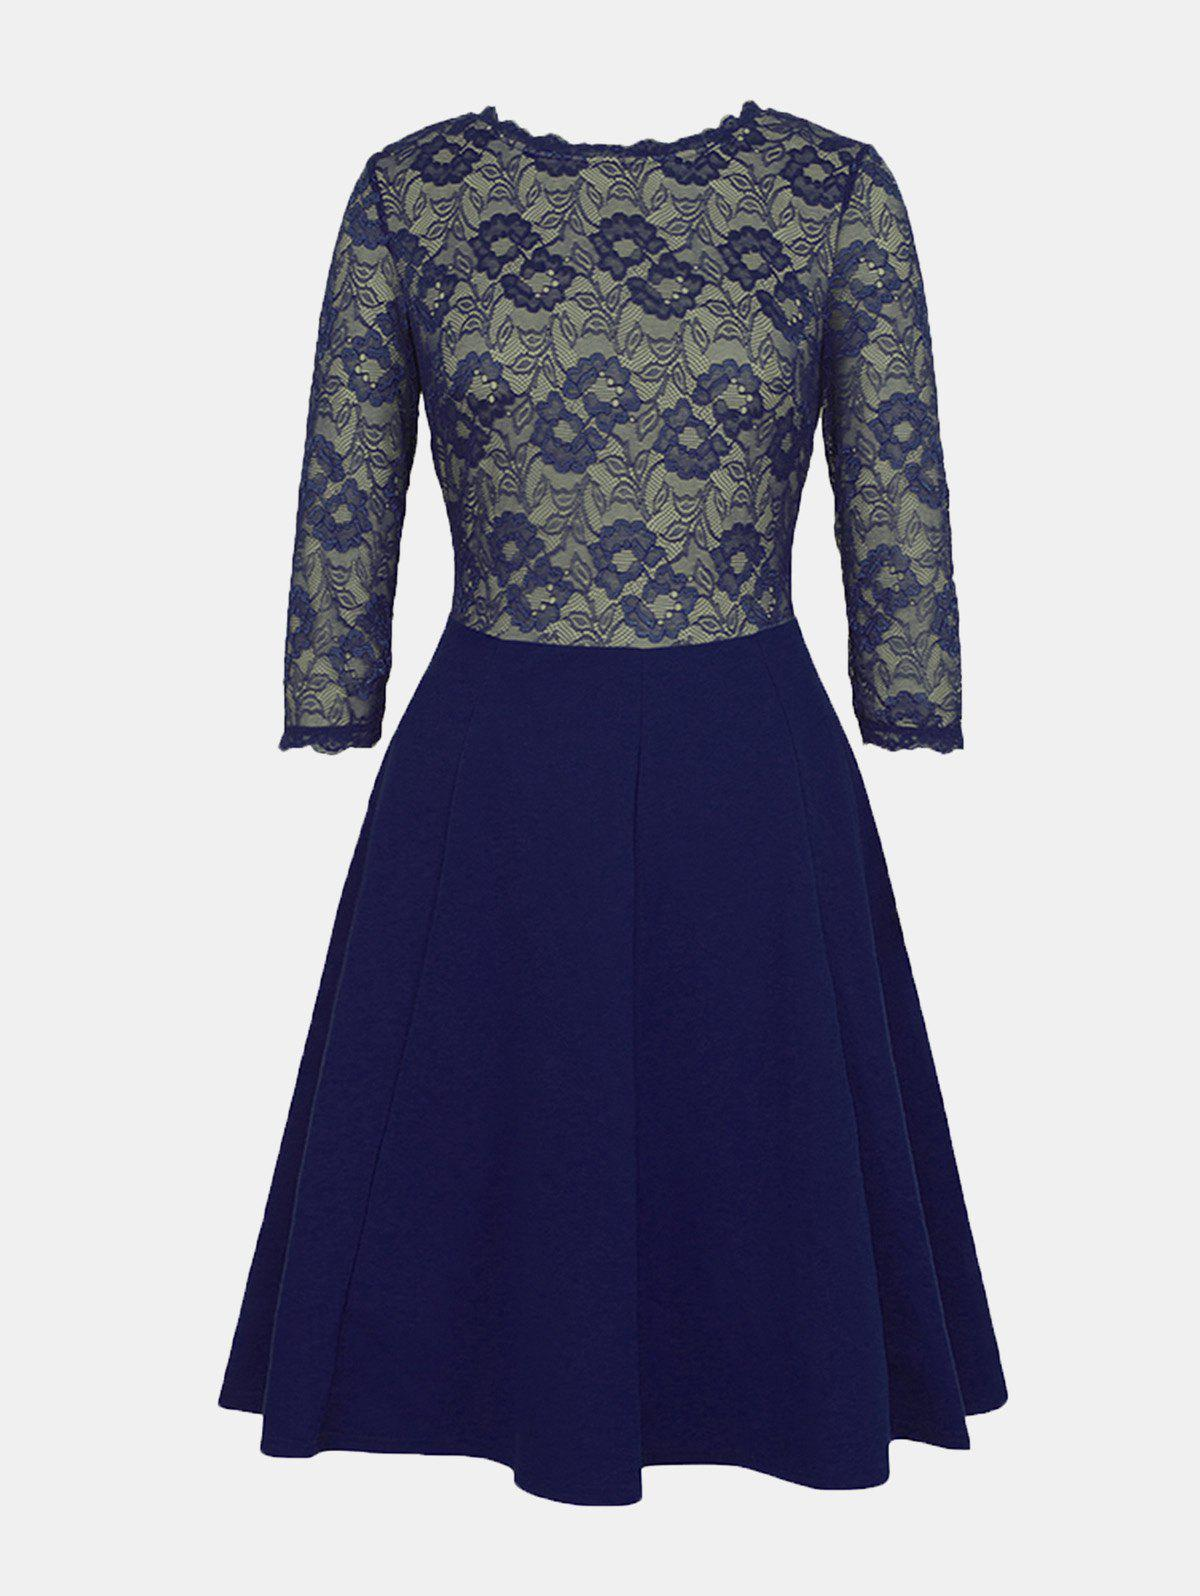 Best Lace Patchwork Round Collar 7 Point Sleeve A-line Dress